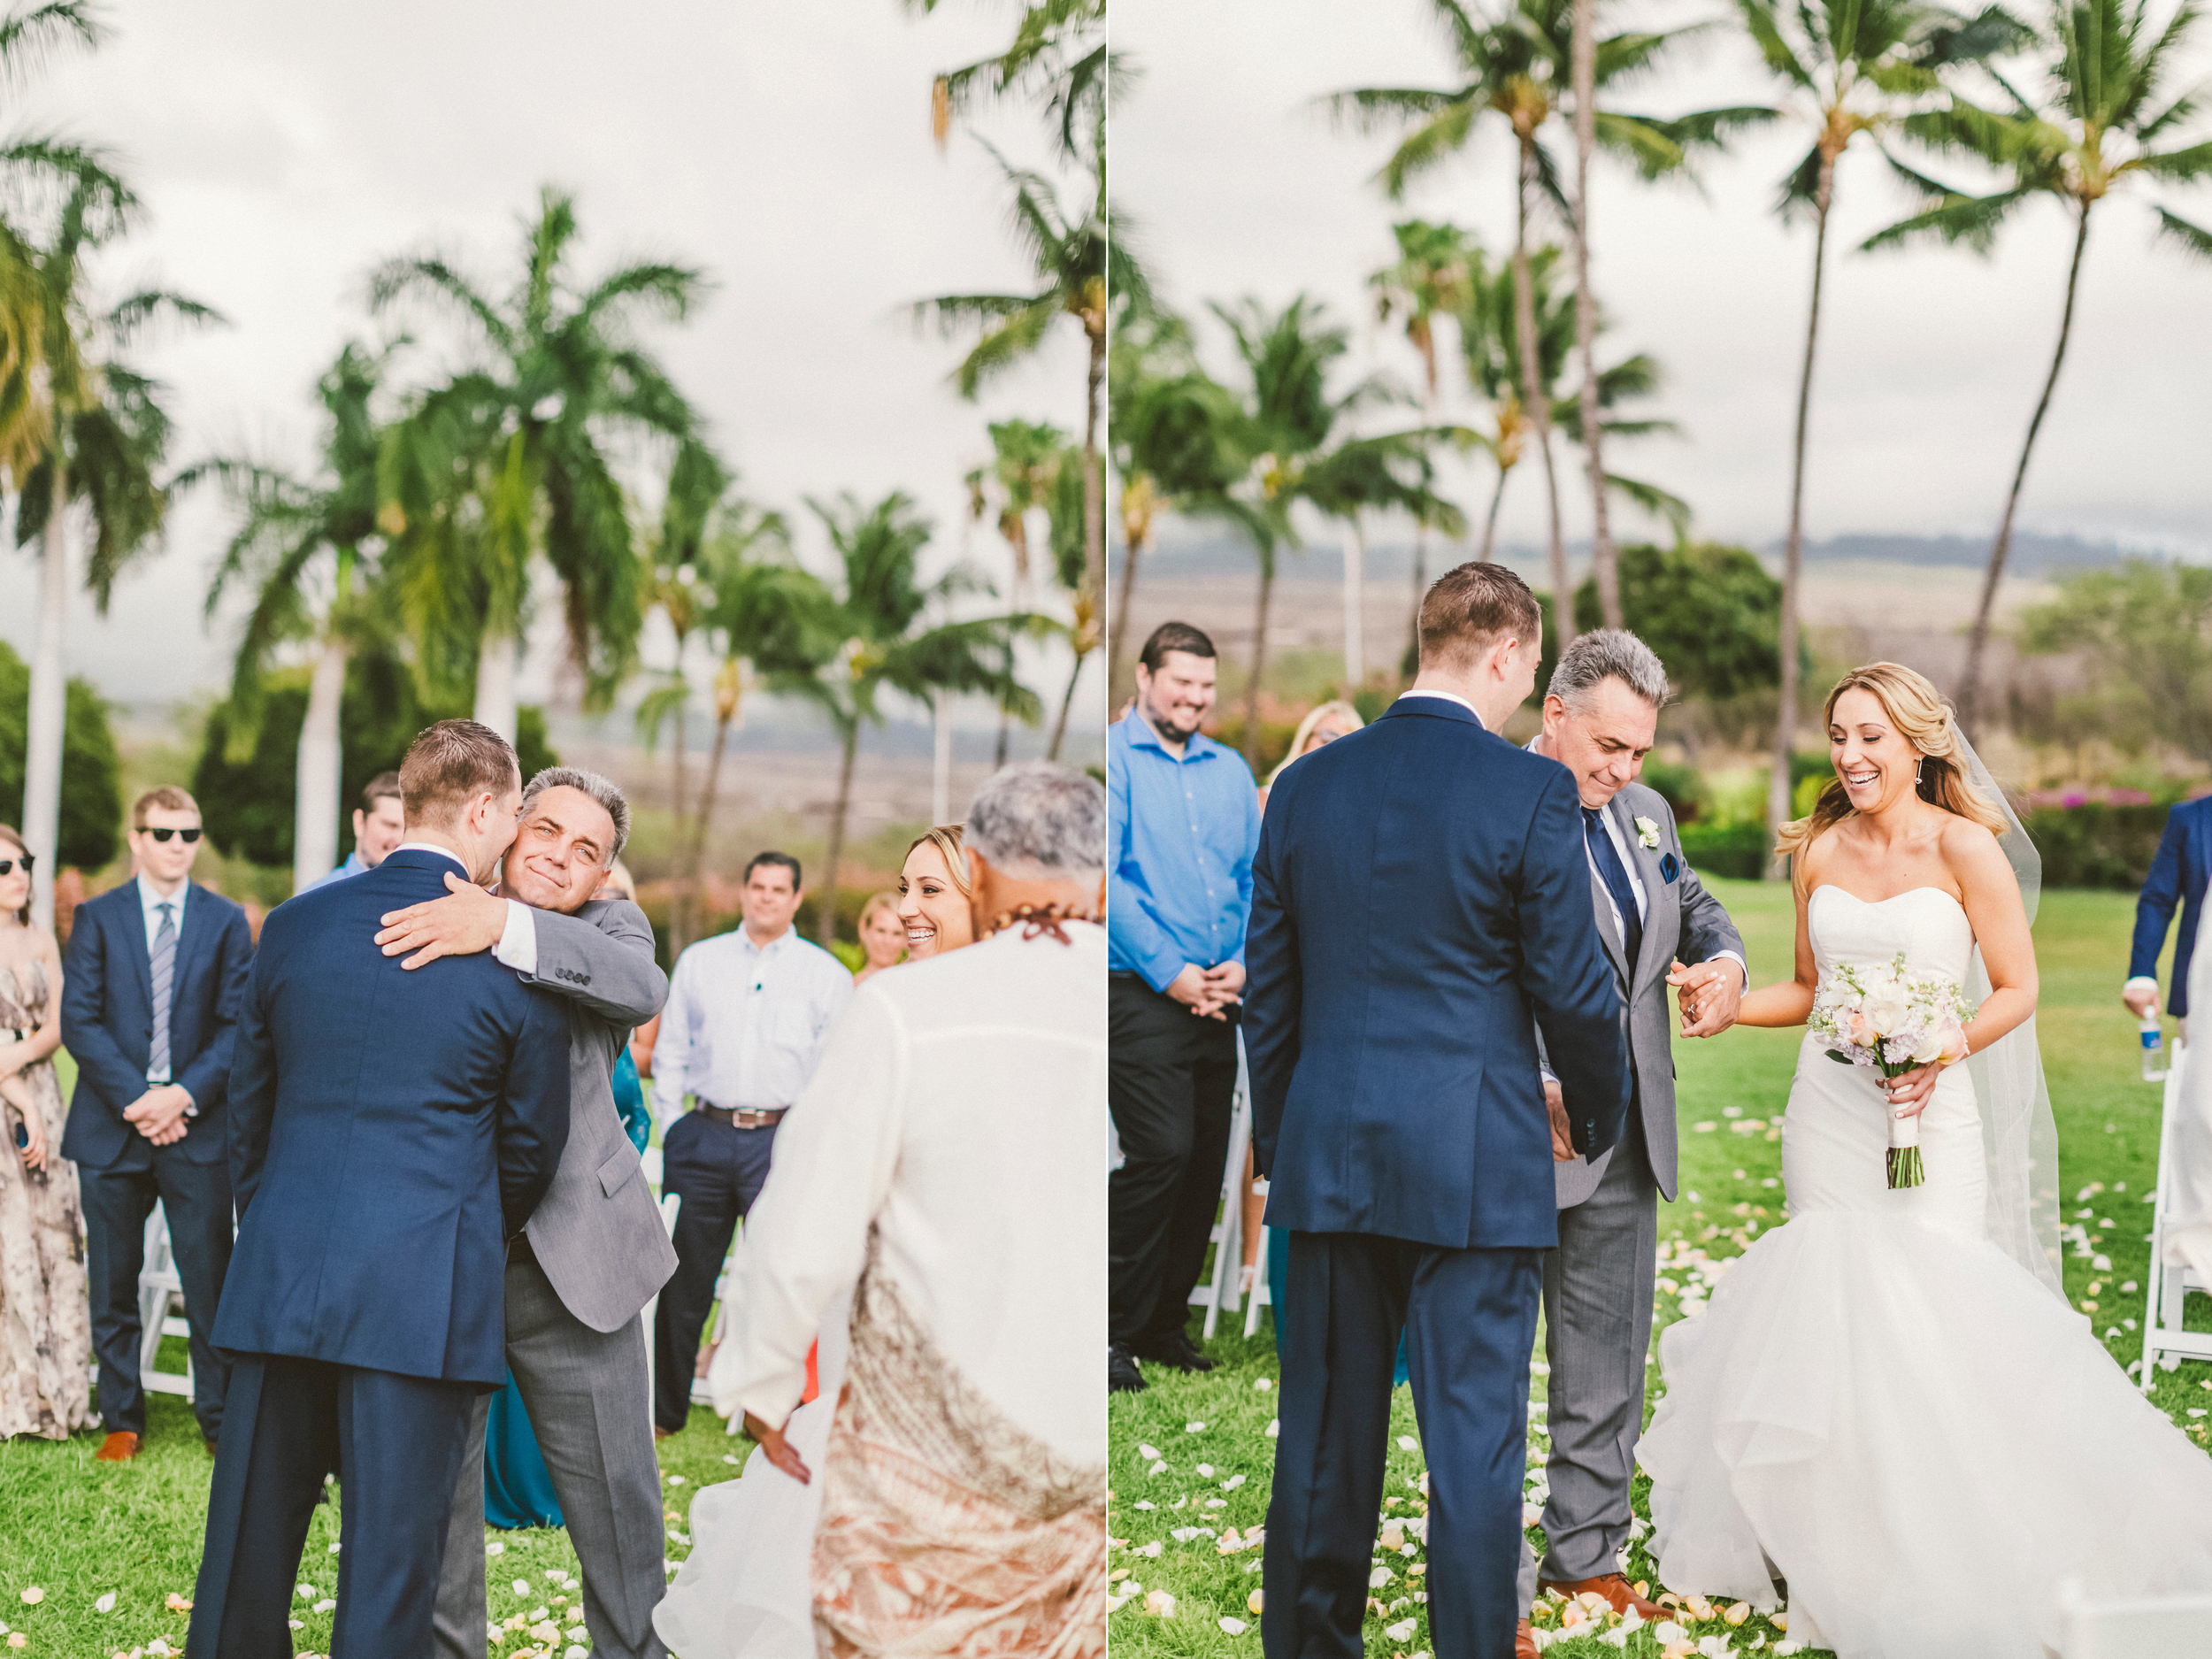 angie-diaz-photography-hotel-wailea-wedding-4.jpg